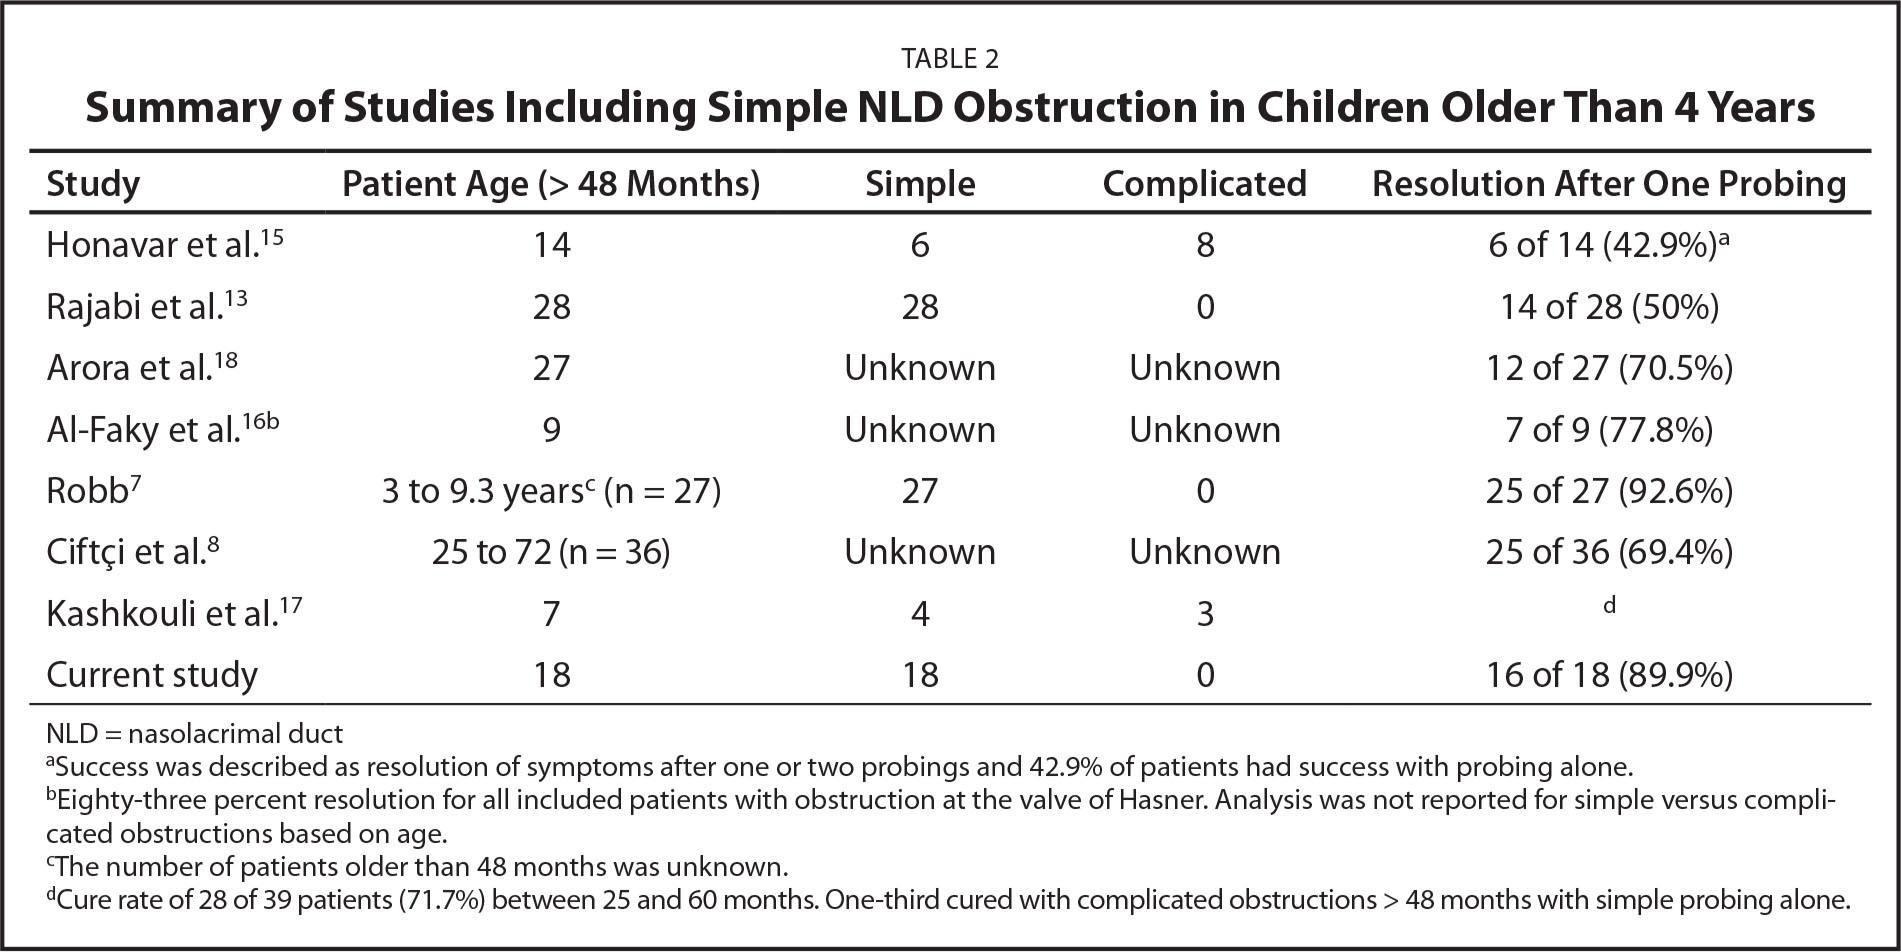 Summary of Studies Including Simple NLD Obstruction in Children Older Than 4 Years